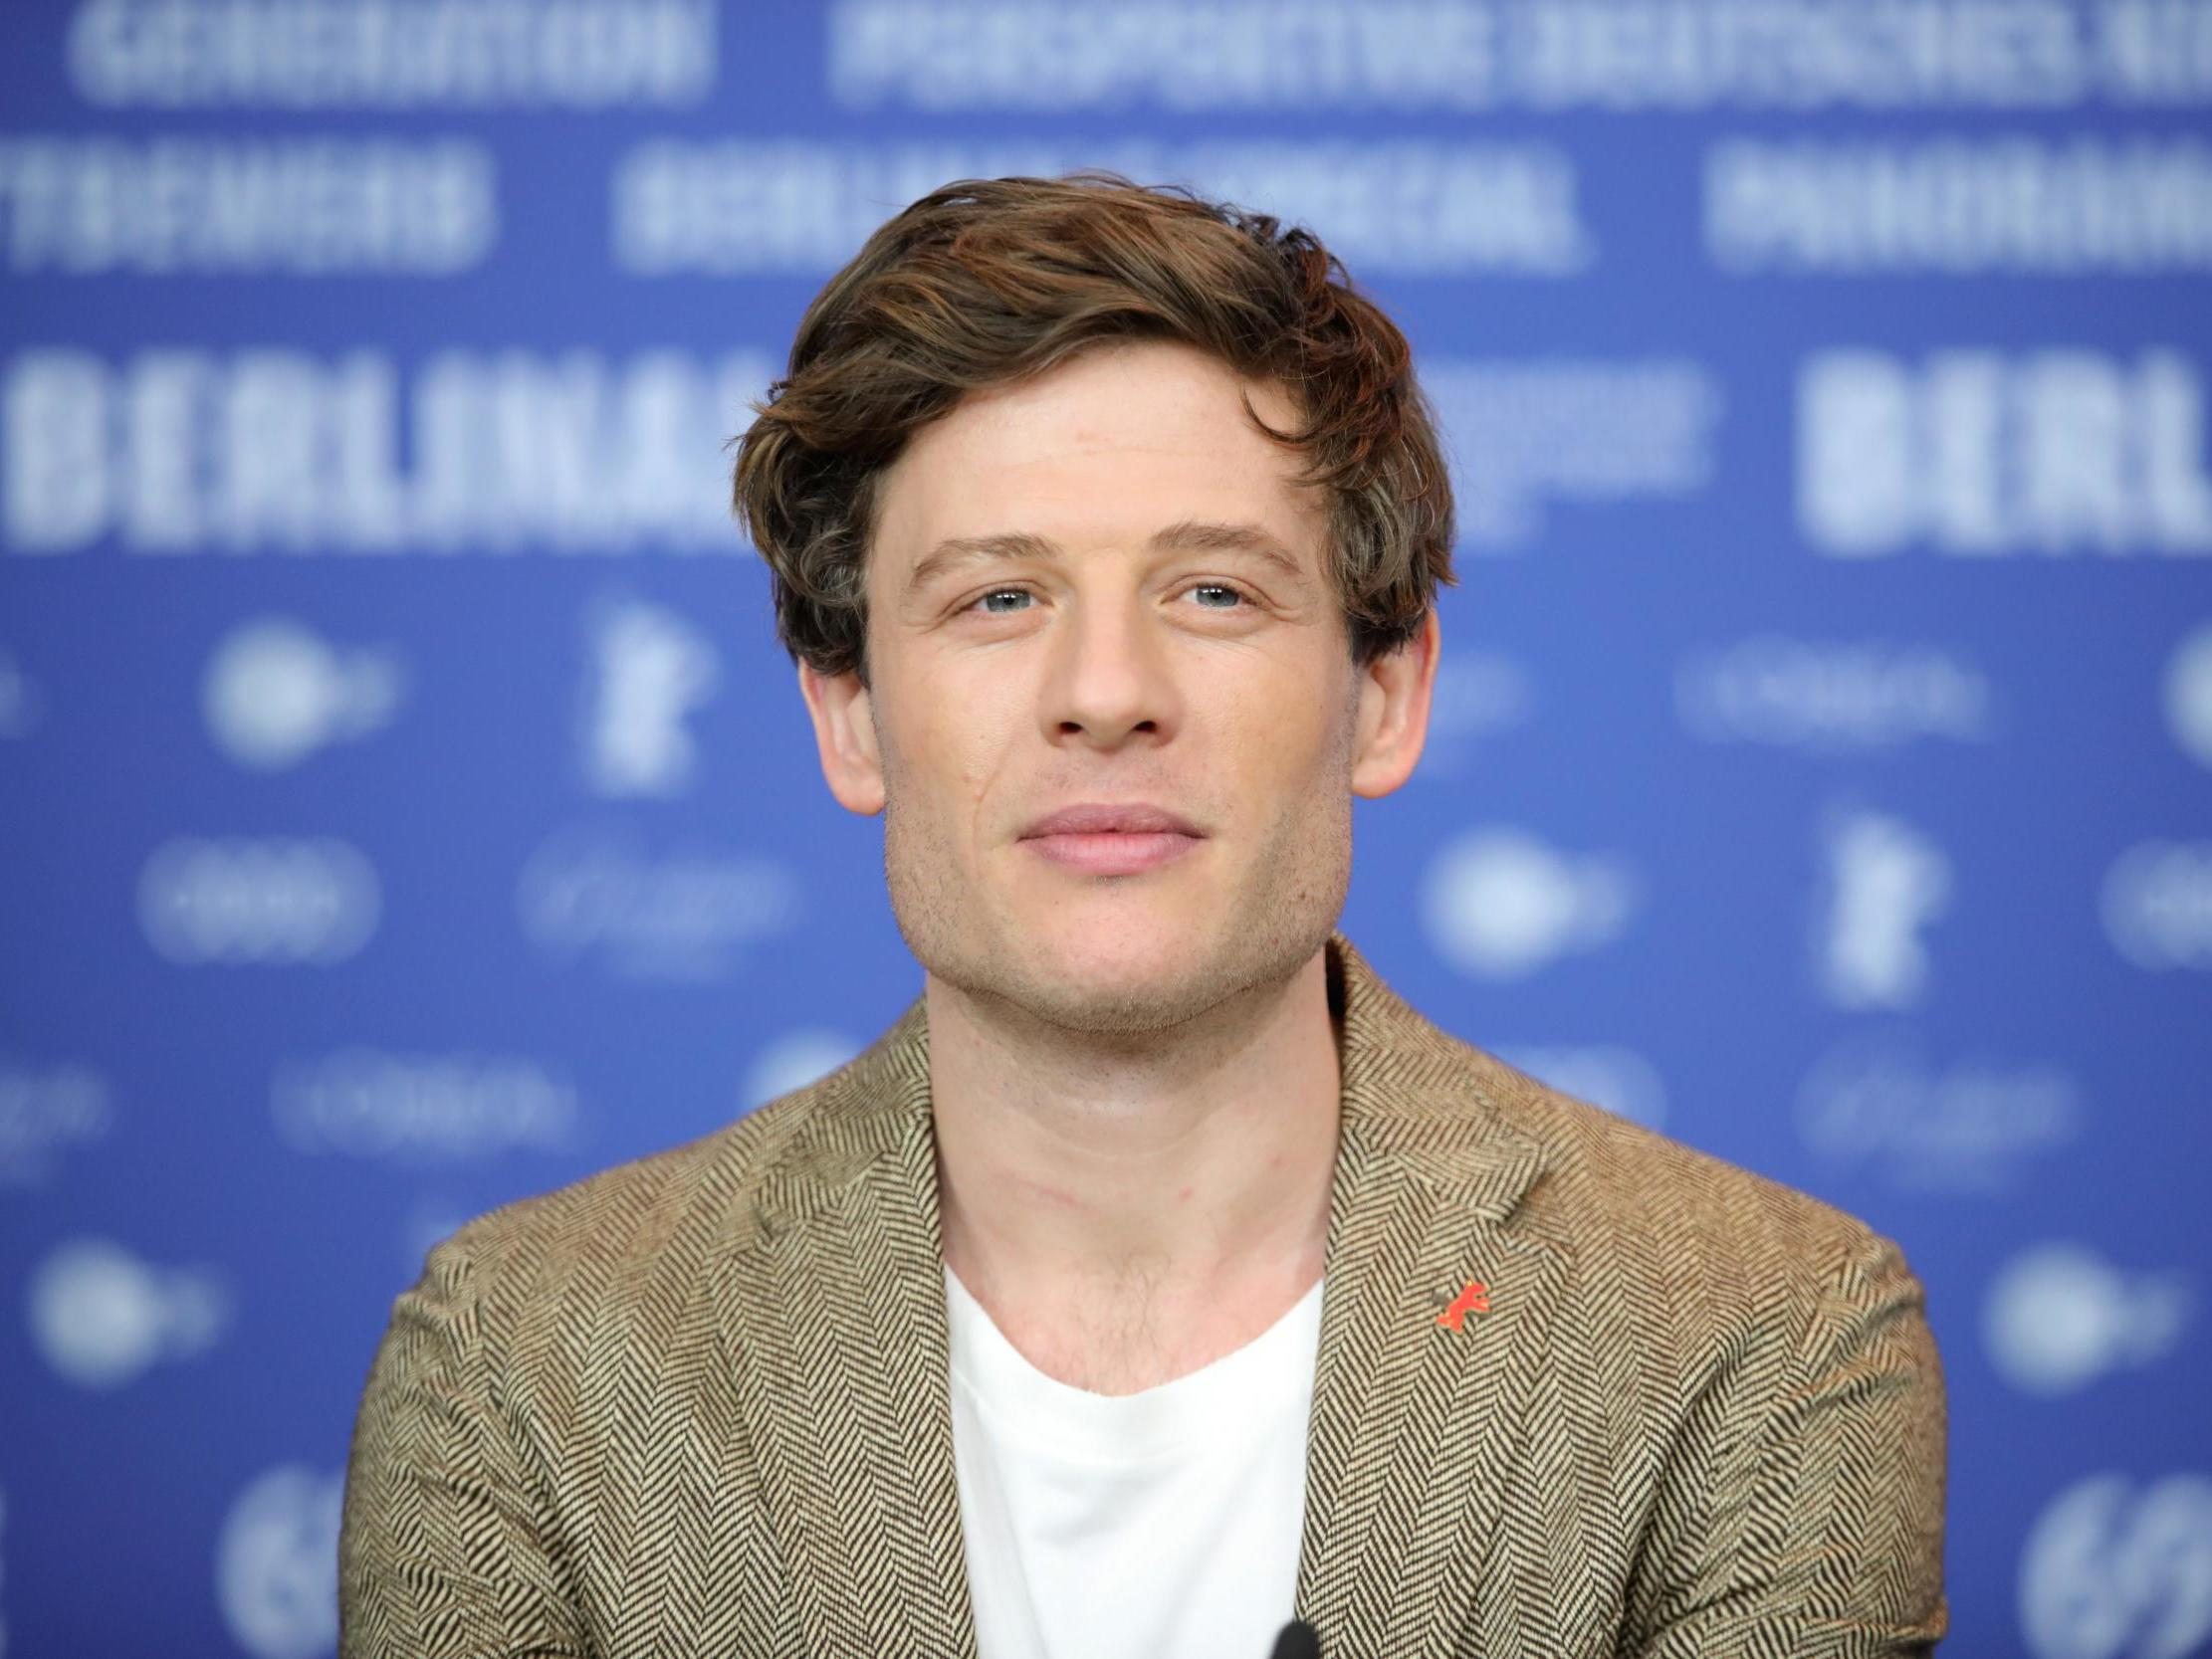 James Norton says he has to inject 'up to 15 times a day' due to type 1 diabetes